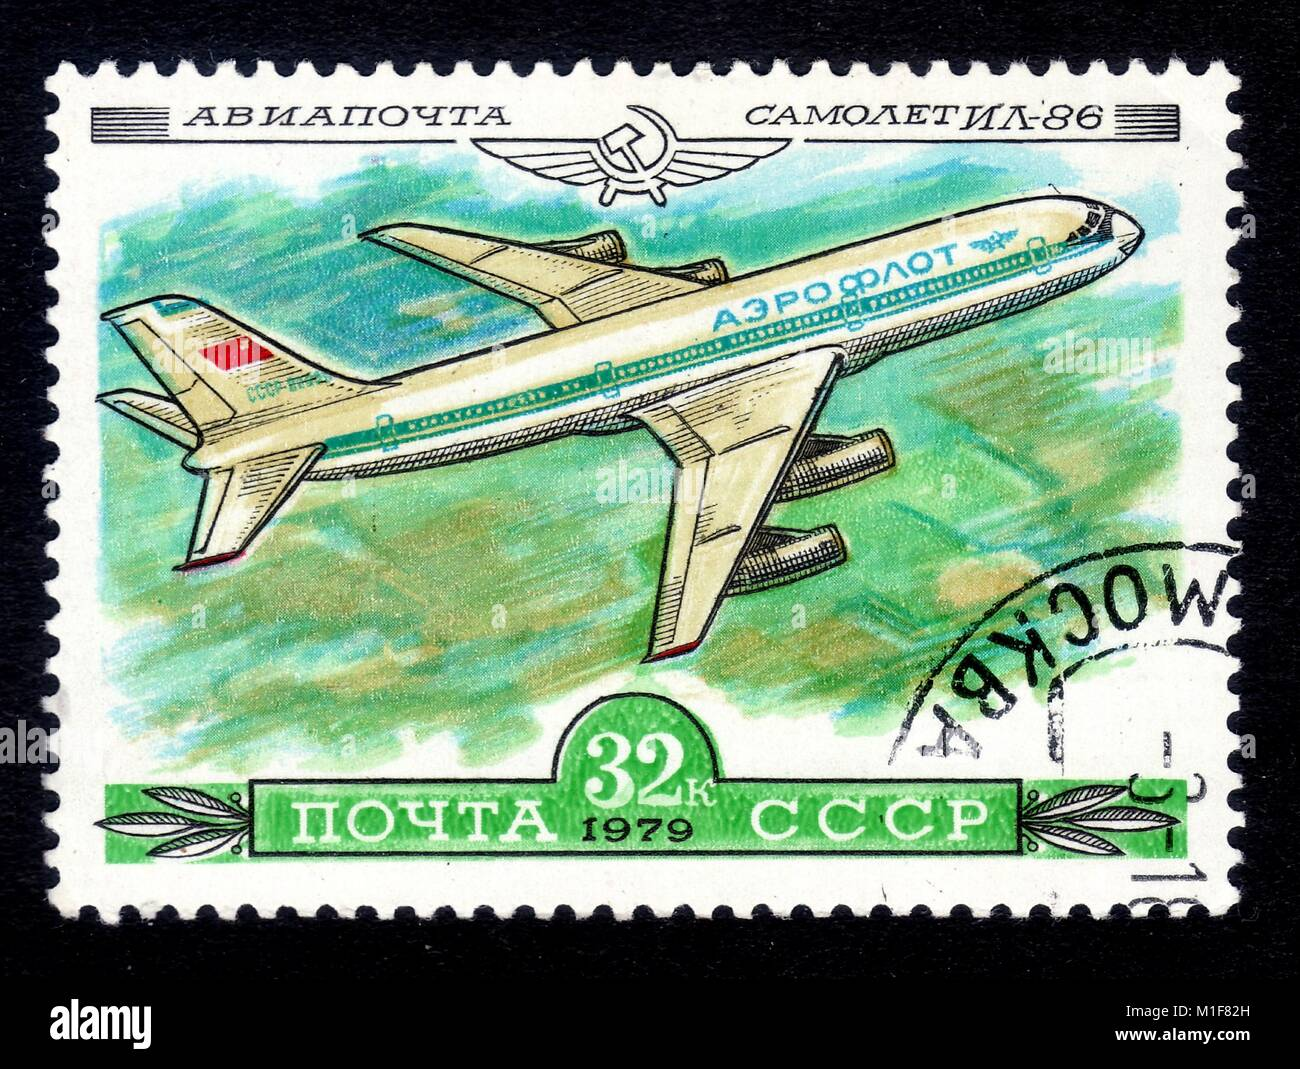 Postage stamp USSR 1976 airmail aircraft Il-86 - Stock Image